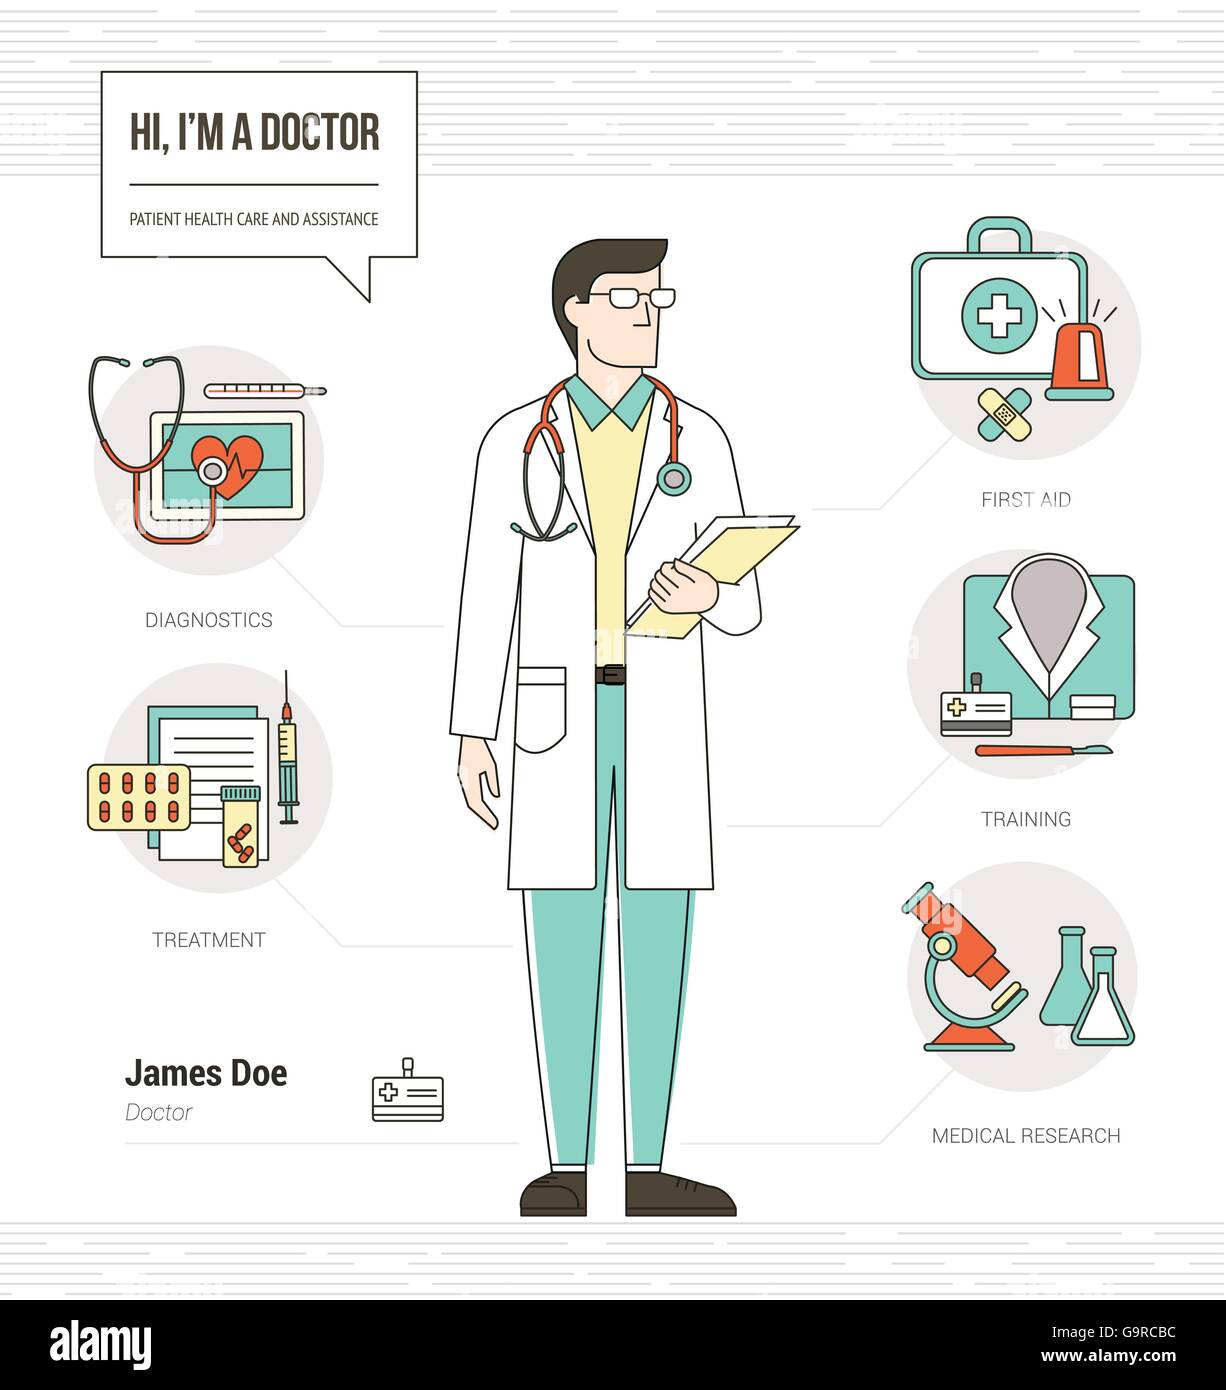 resume Professional Skills Resume professional doctor infographic skills resume with tools medical equipment and icons set